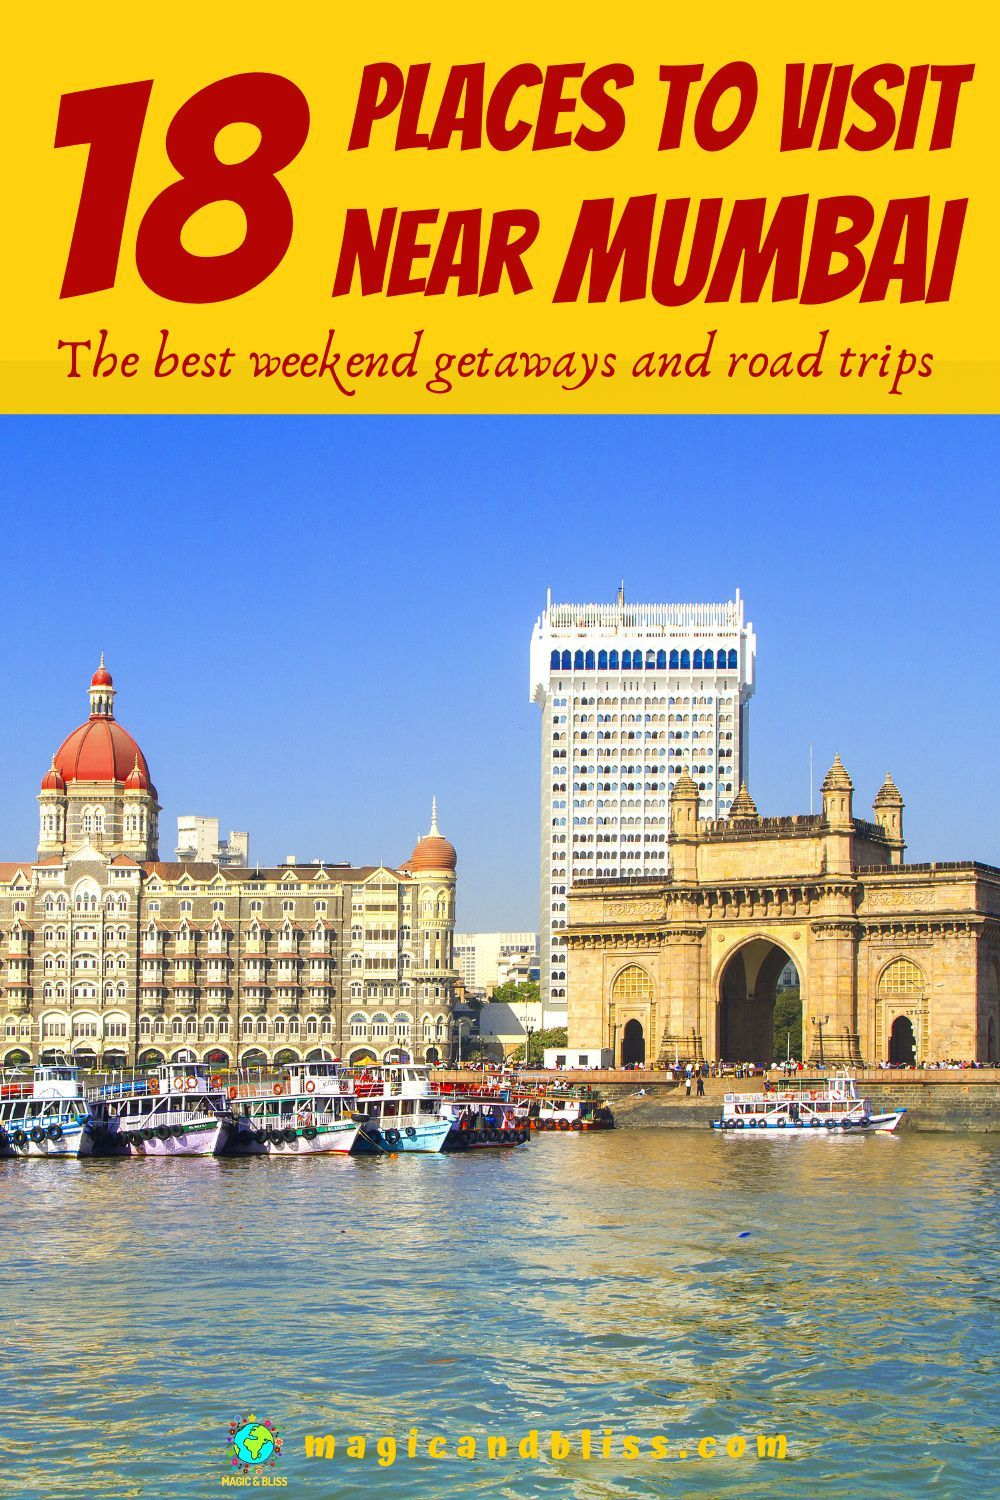 18 Places To Visit Near Mumbai The Best Weekend Getaways And Road Trips Asia Travel India Travel Best Weekend Getaways